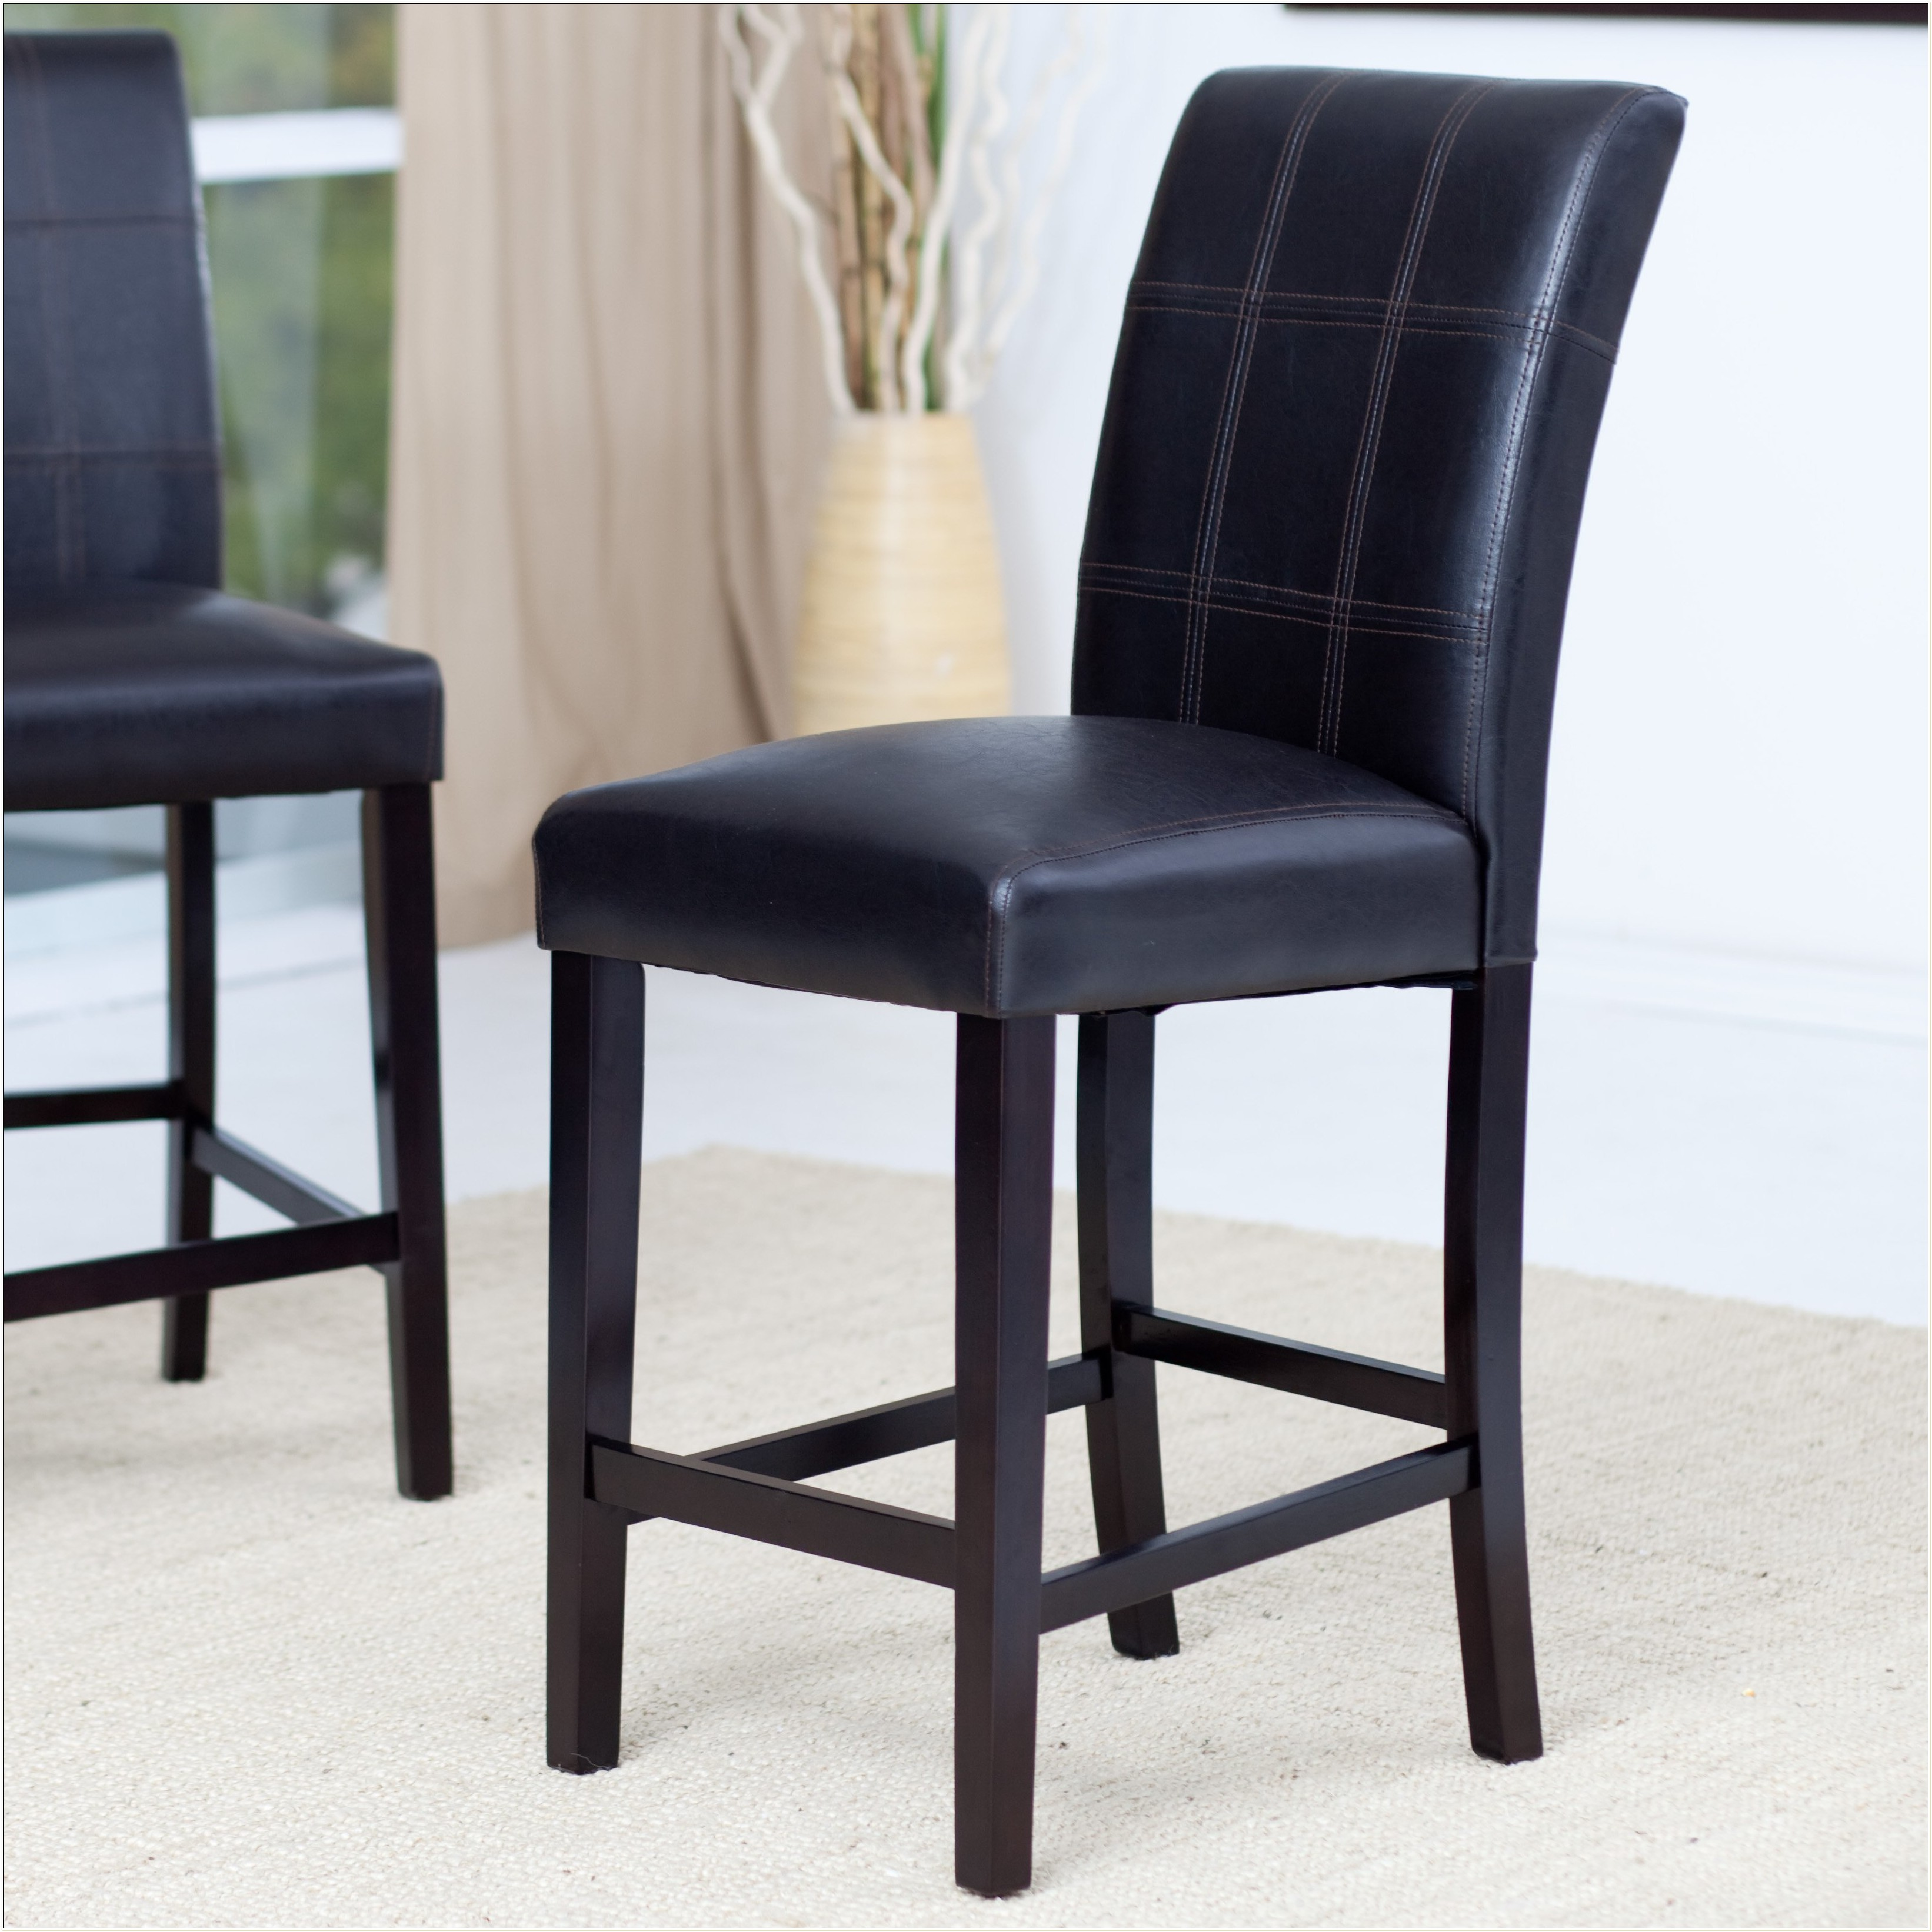 26 Inch Counter Stools